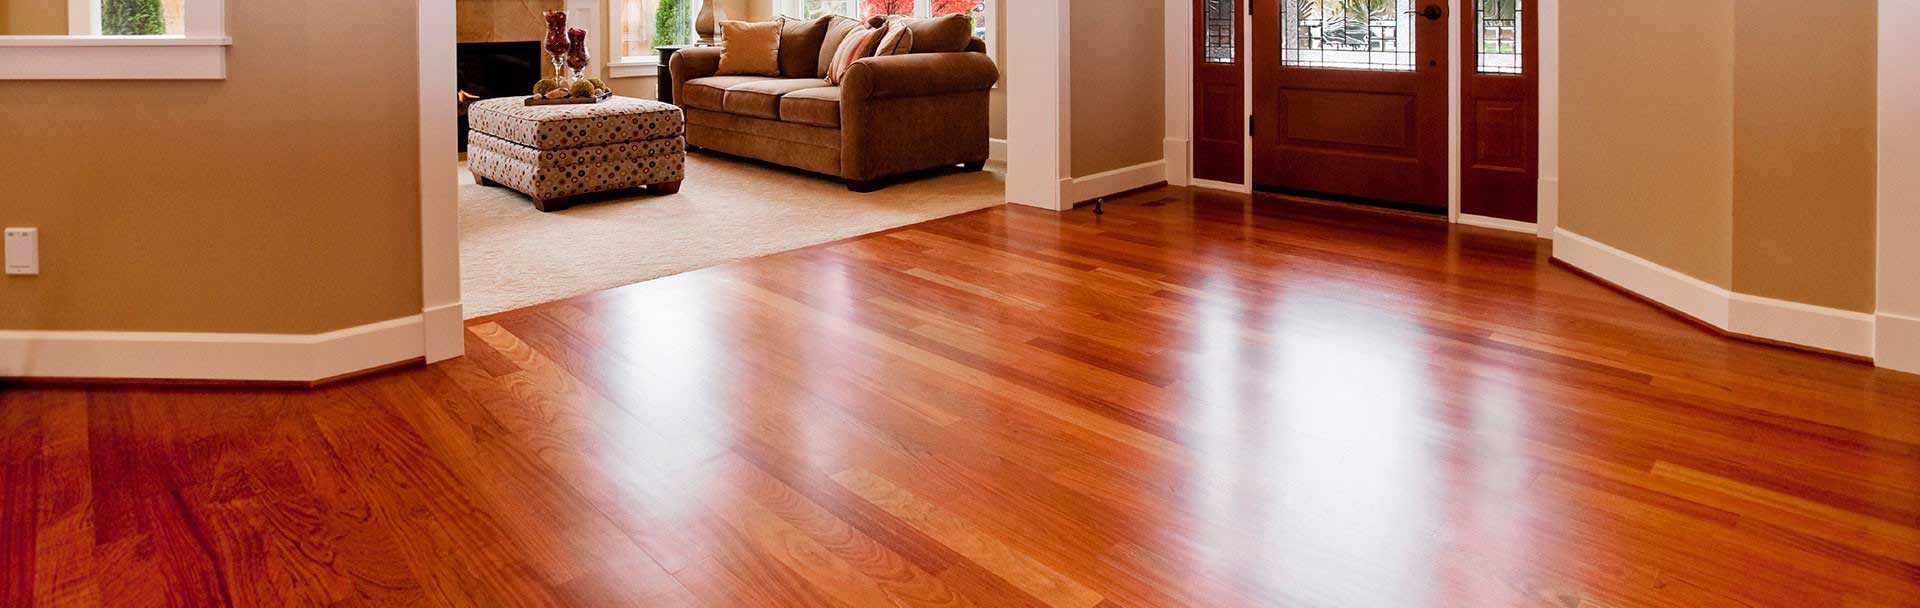 Sunnyvale hardwood floor installation refinishing repair for Hardwood floor refinishing